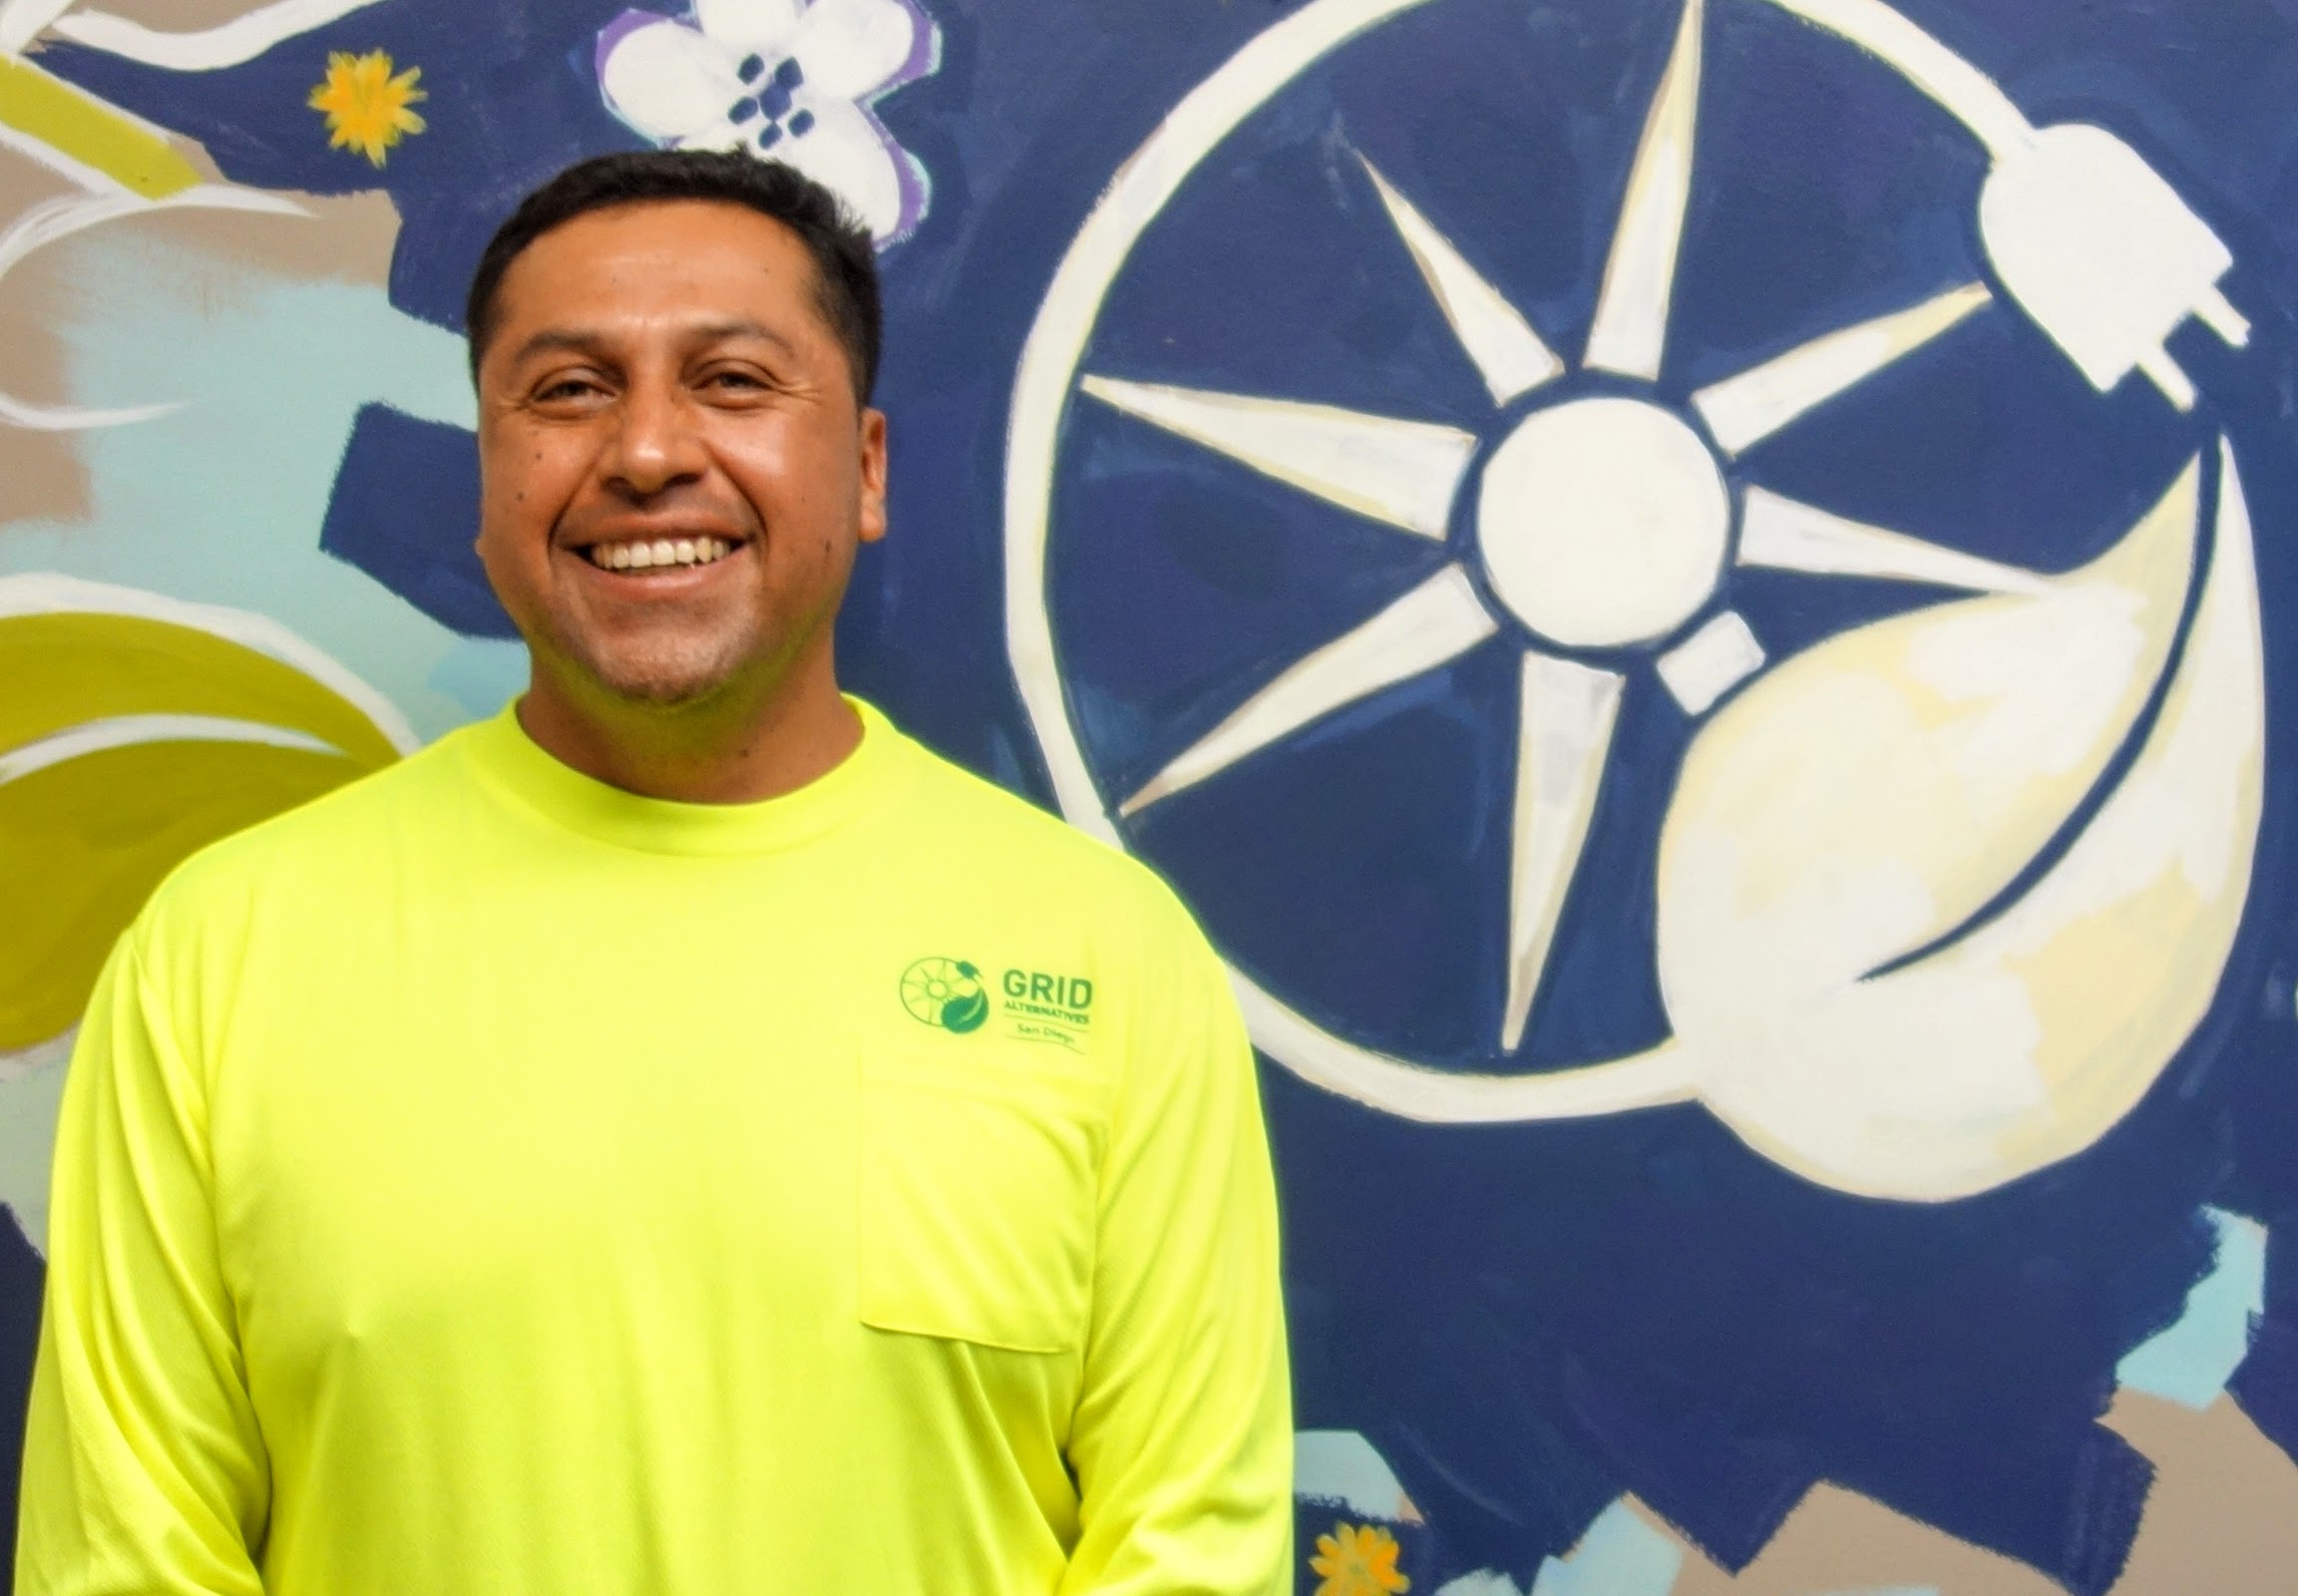 Photo of Luis smiling in front of a GRID mural